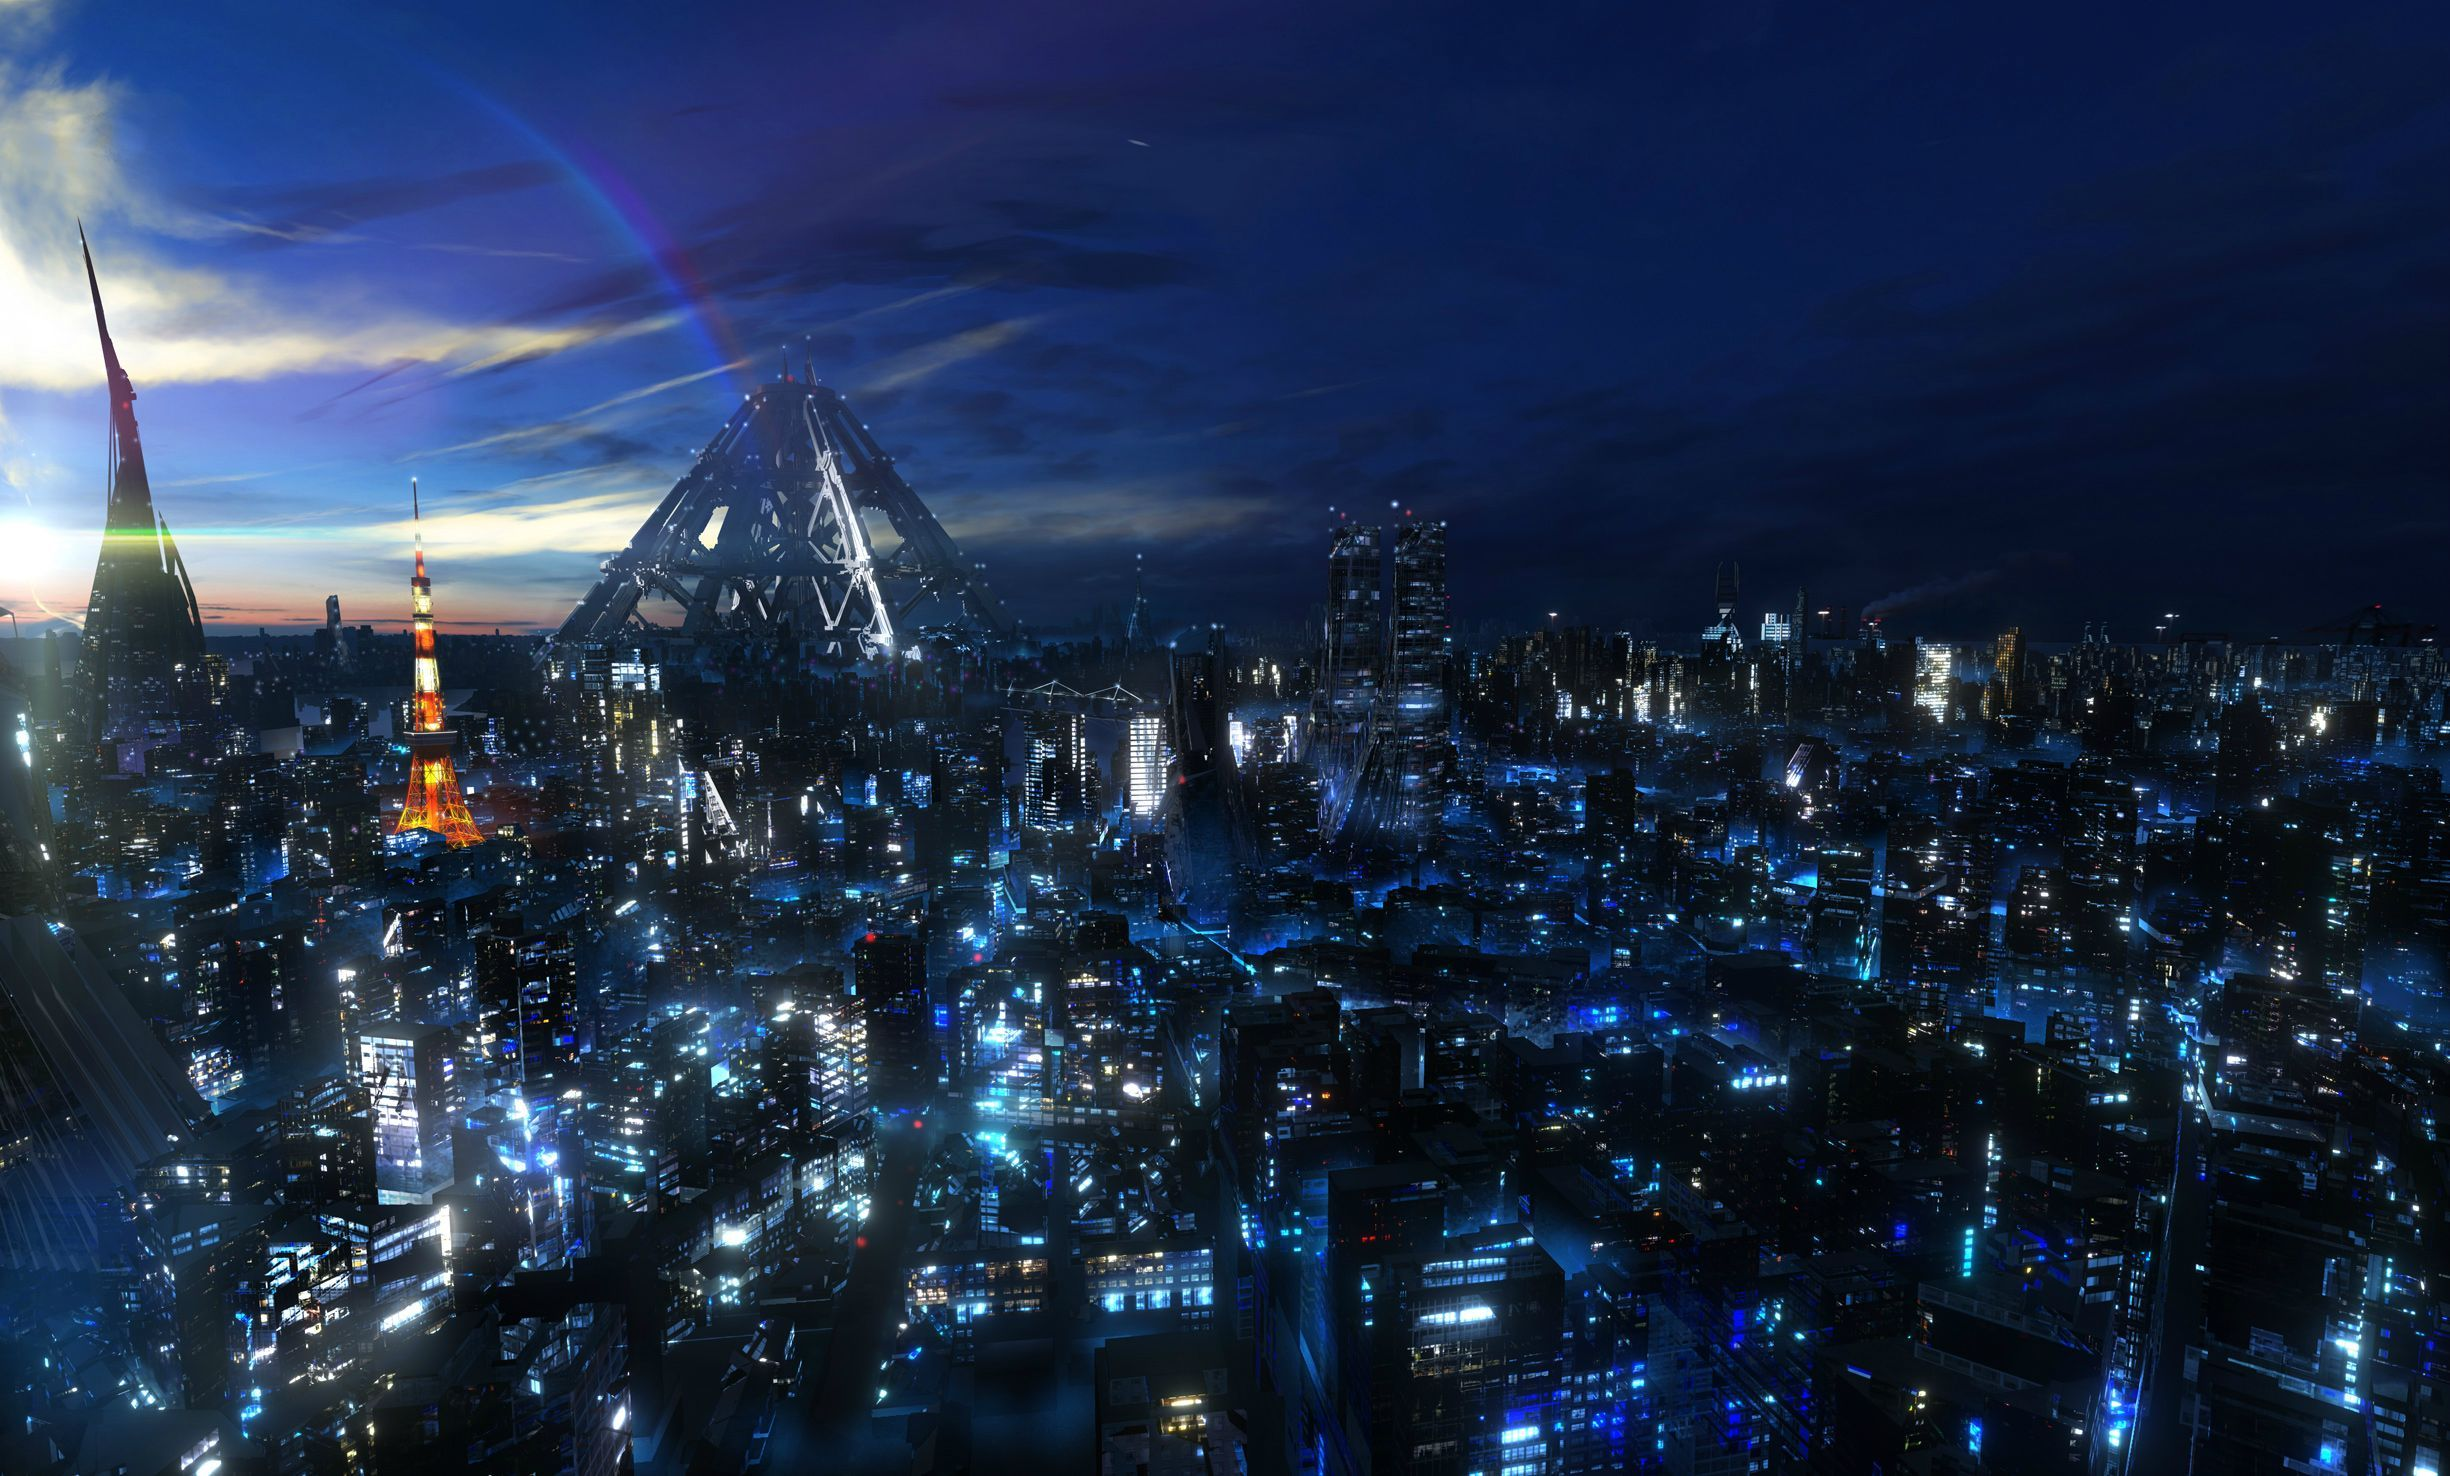 Image Result For Cyberpunk Landscapes Anime City Futuristic